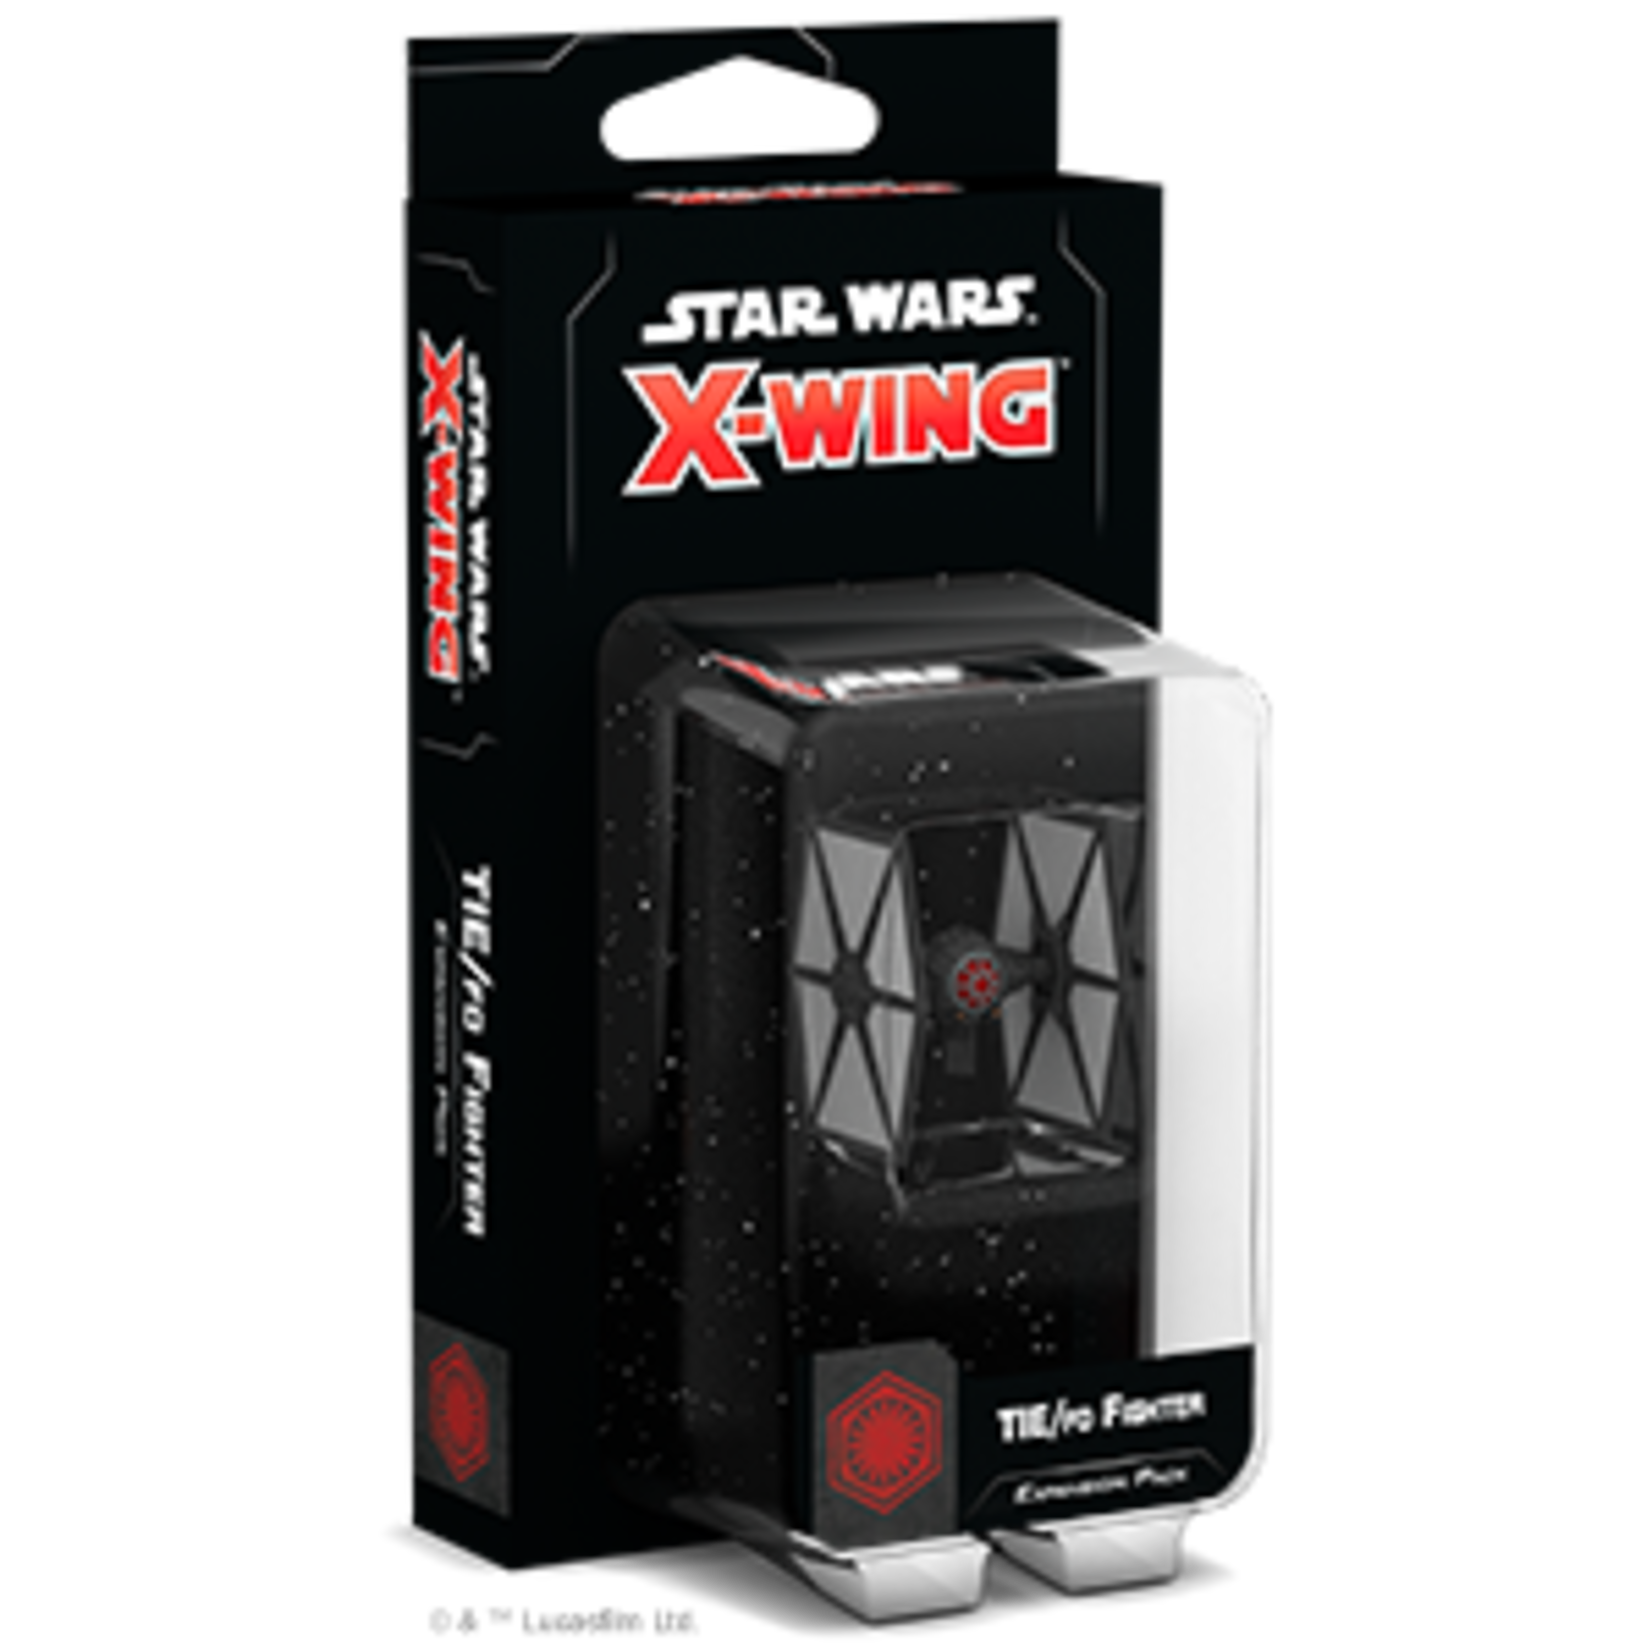 Fantasy Flight Games Star Wars X-Wing 2nd Edition: TIE/fo Fighter Expansion Pack